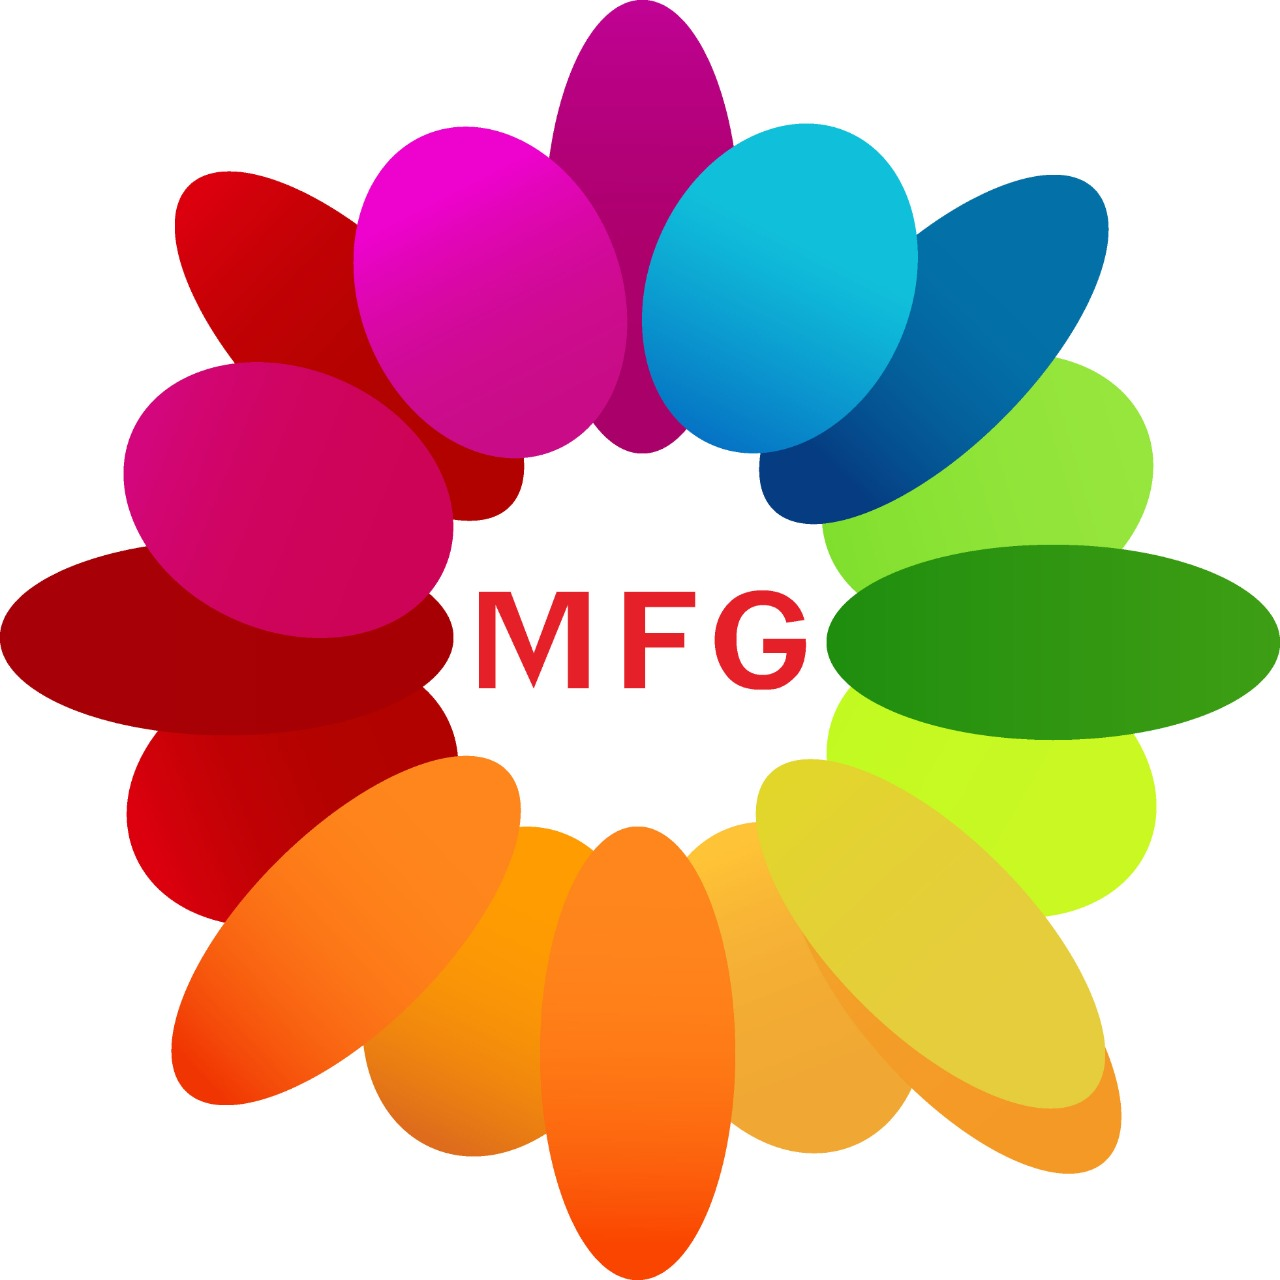 1Kg strawberry cheese cake